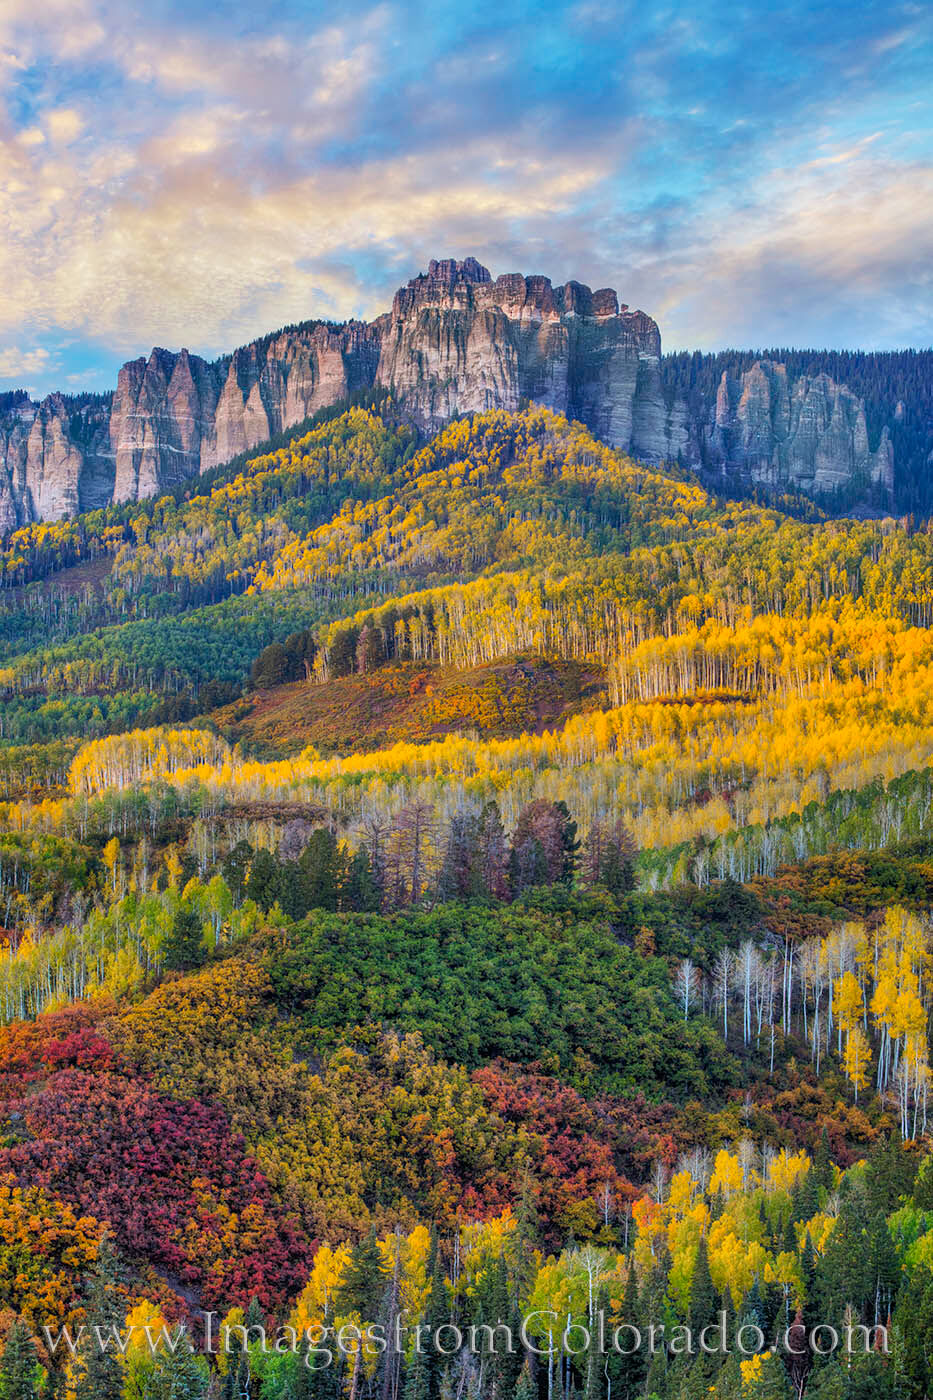 Between Ridgway and the top of Owl Creek Pass, the views can be incredible in Autumn. Here, the fall colors of aspen and scrub...